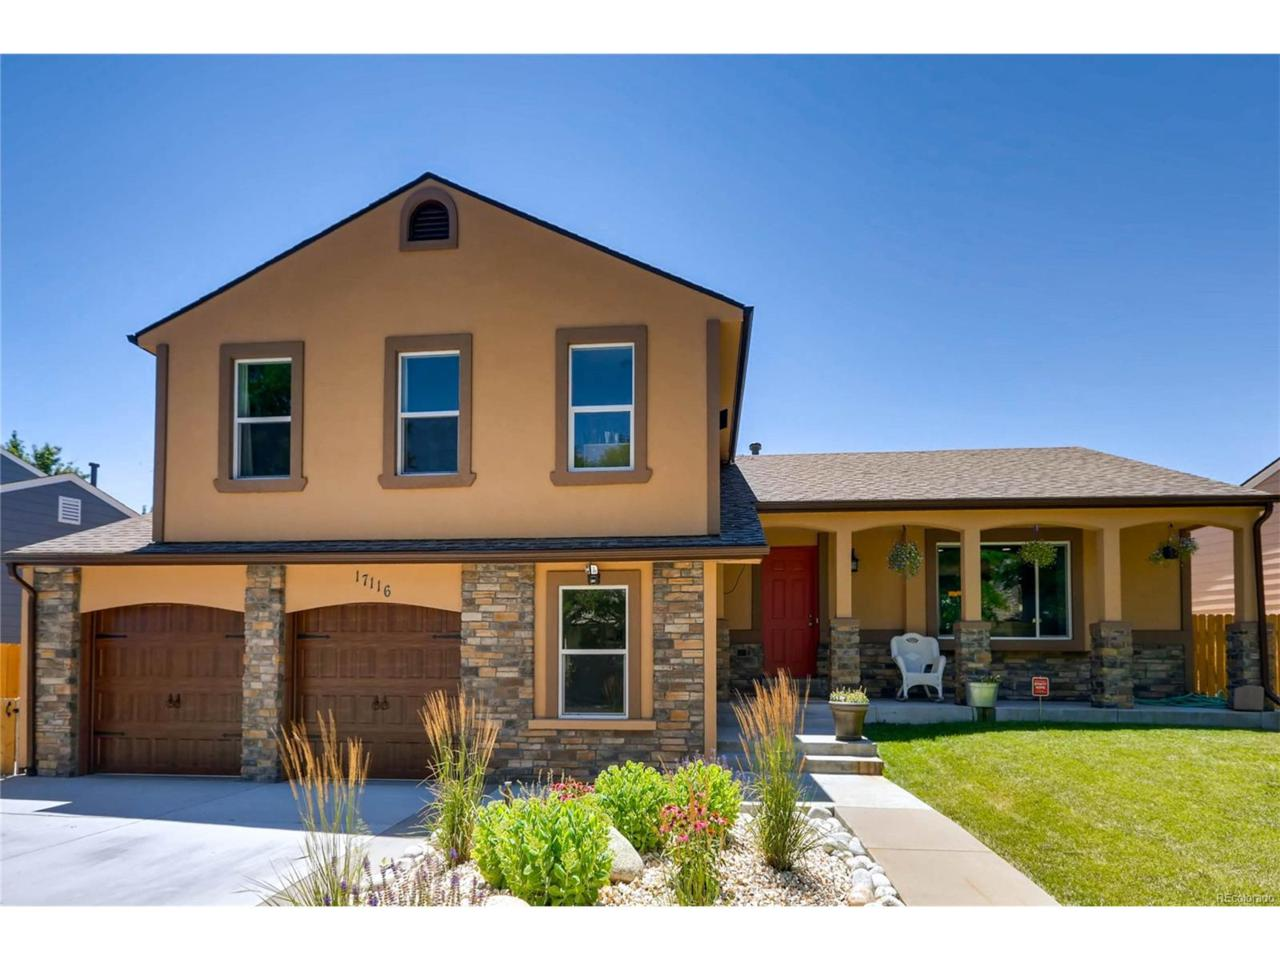 17116 E Pacific Place, Aurora, CO 80013 (MLS #1833165) :: 8z Real Estate